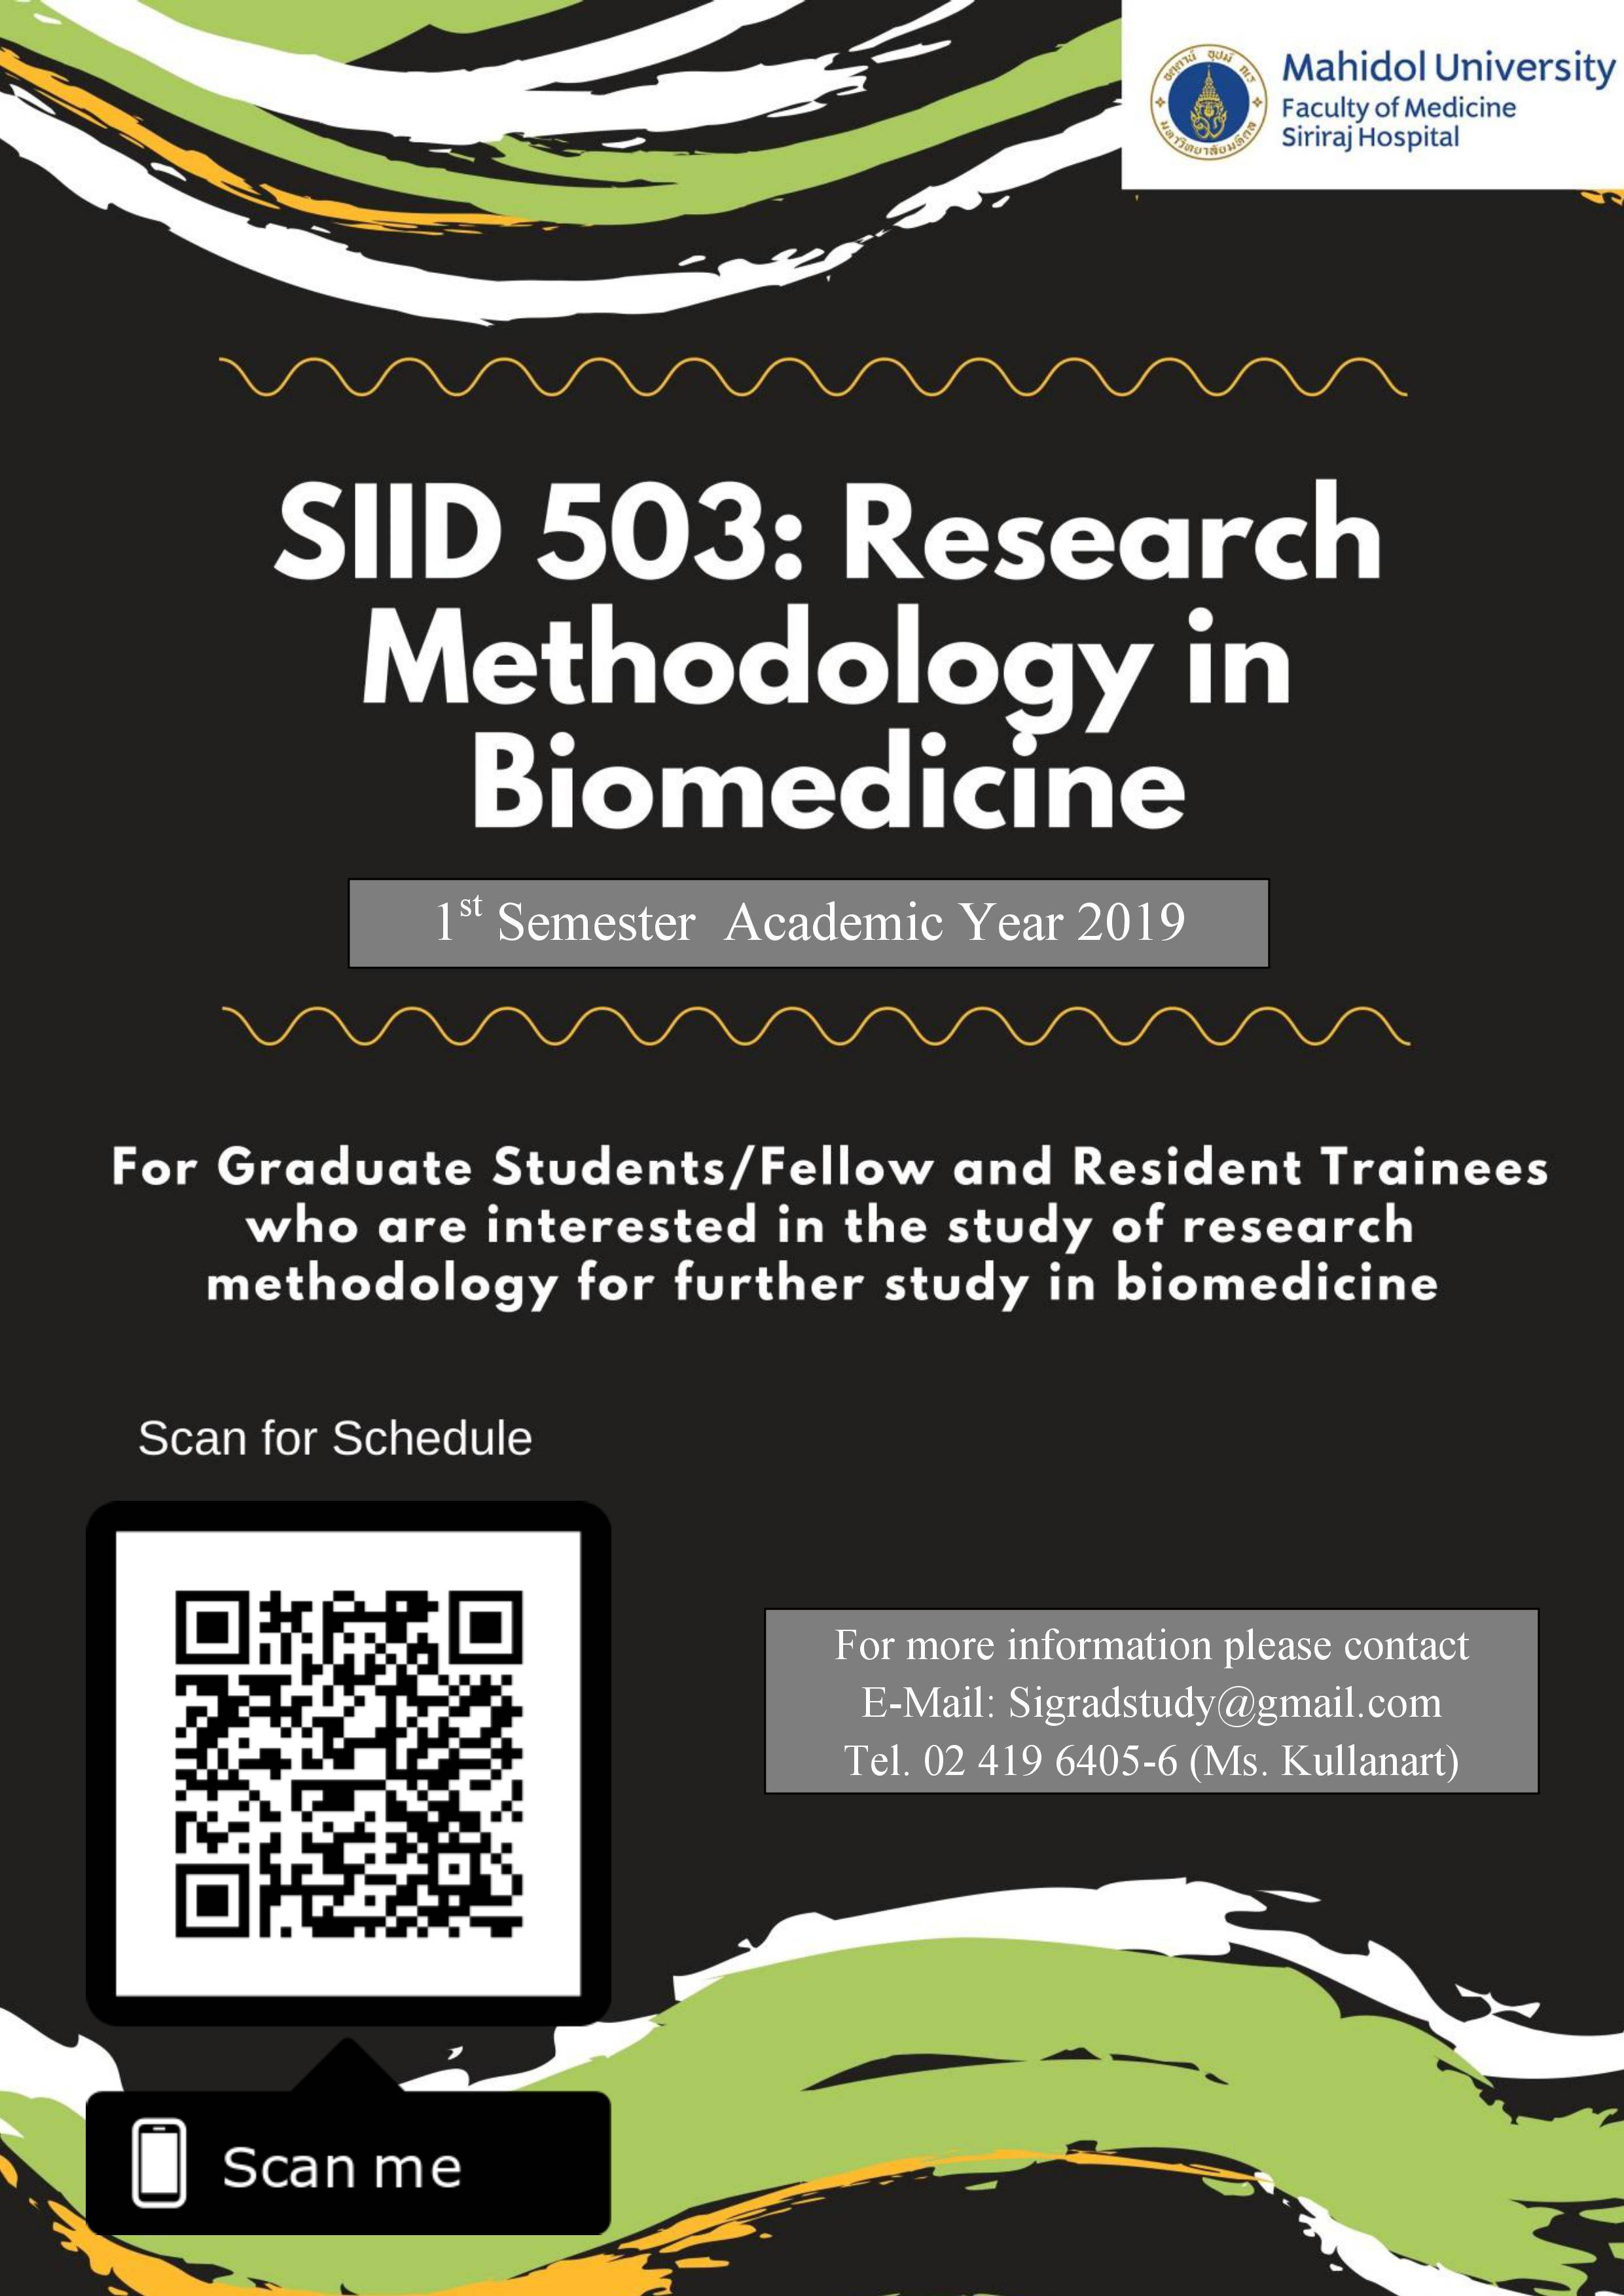 SIID 503 Research Methodology in Biomedicine